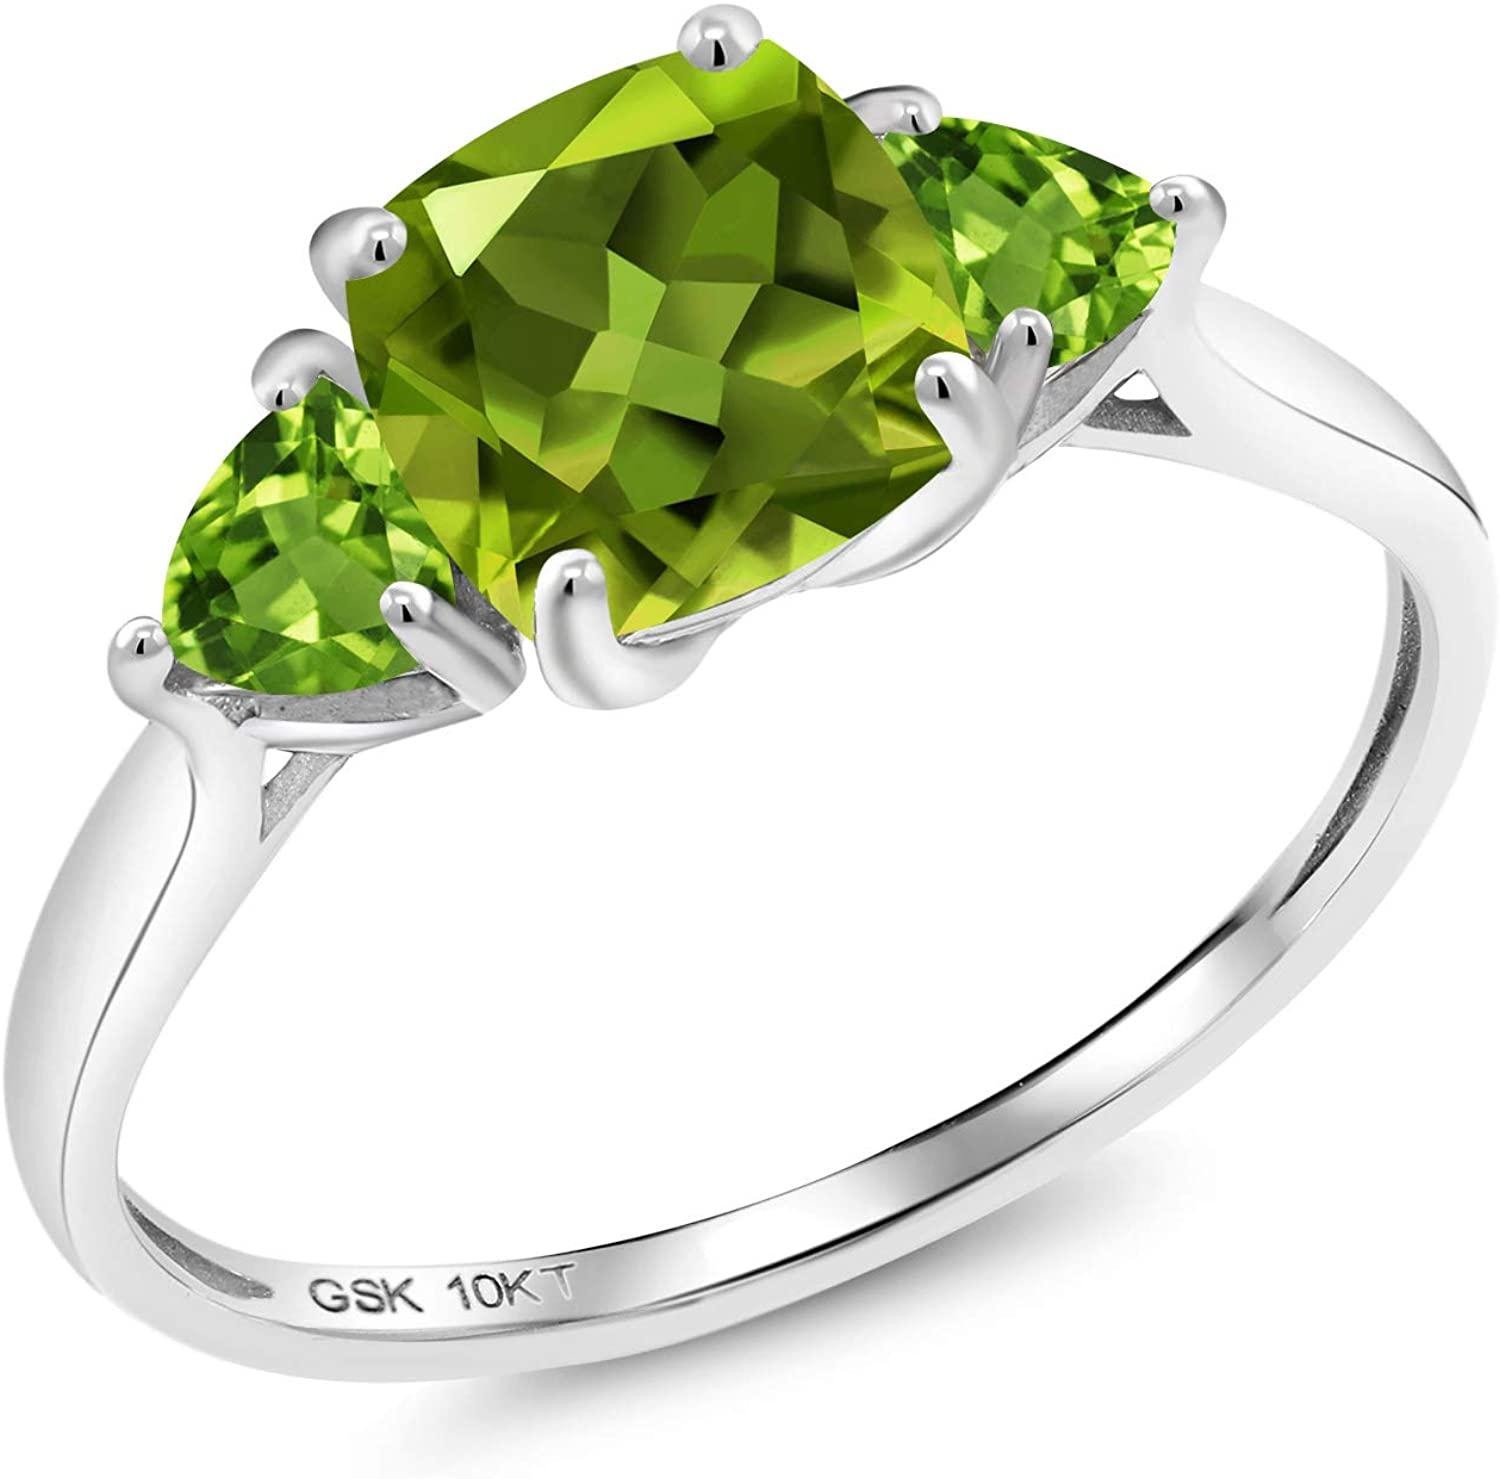 Gem Stone King 10K White Gold Green Peridot 3 Stone Meghan Engagement Ring (2.22 Ct Cushion Cut, Available in size 5, 6, 7, 8, 9)